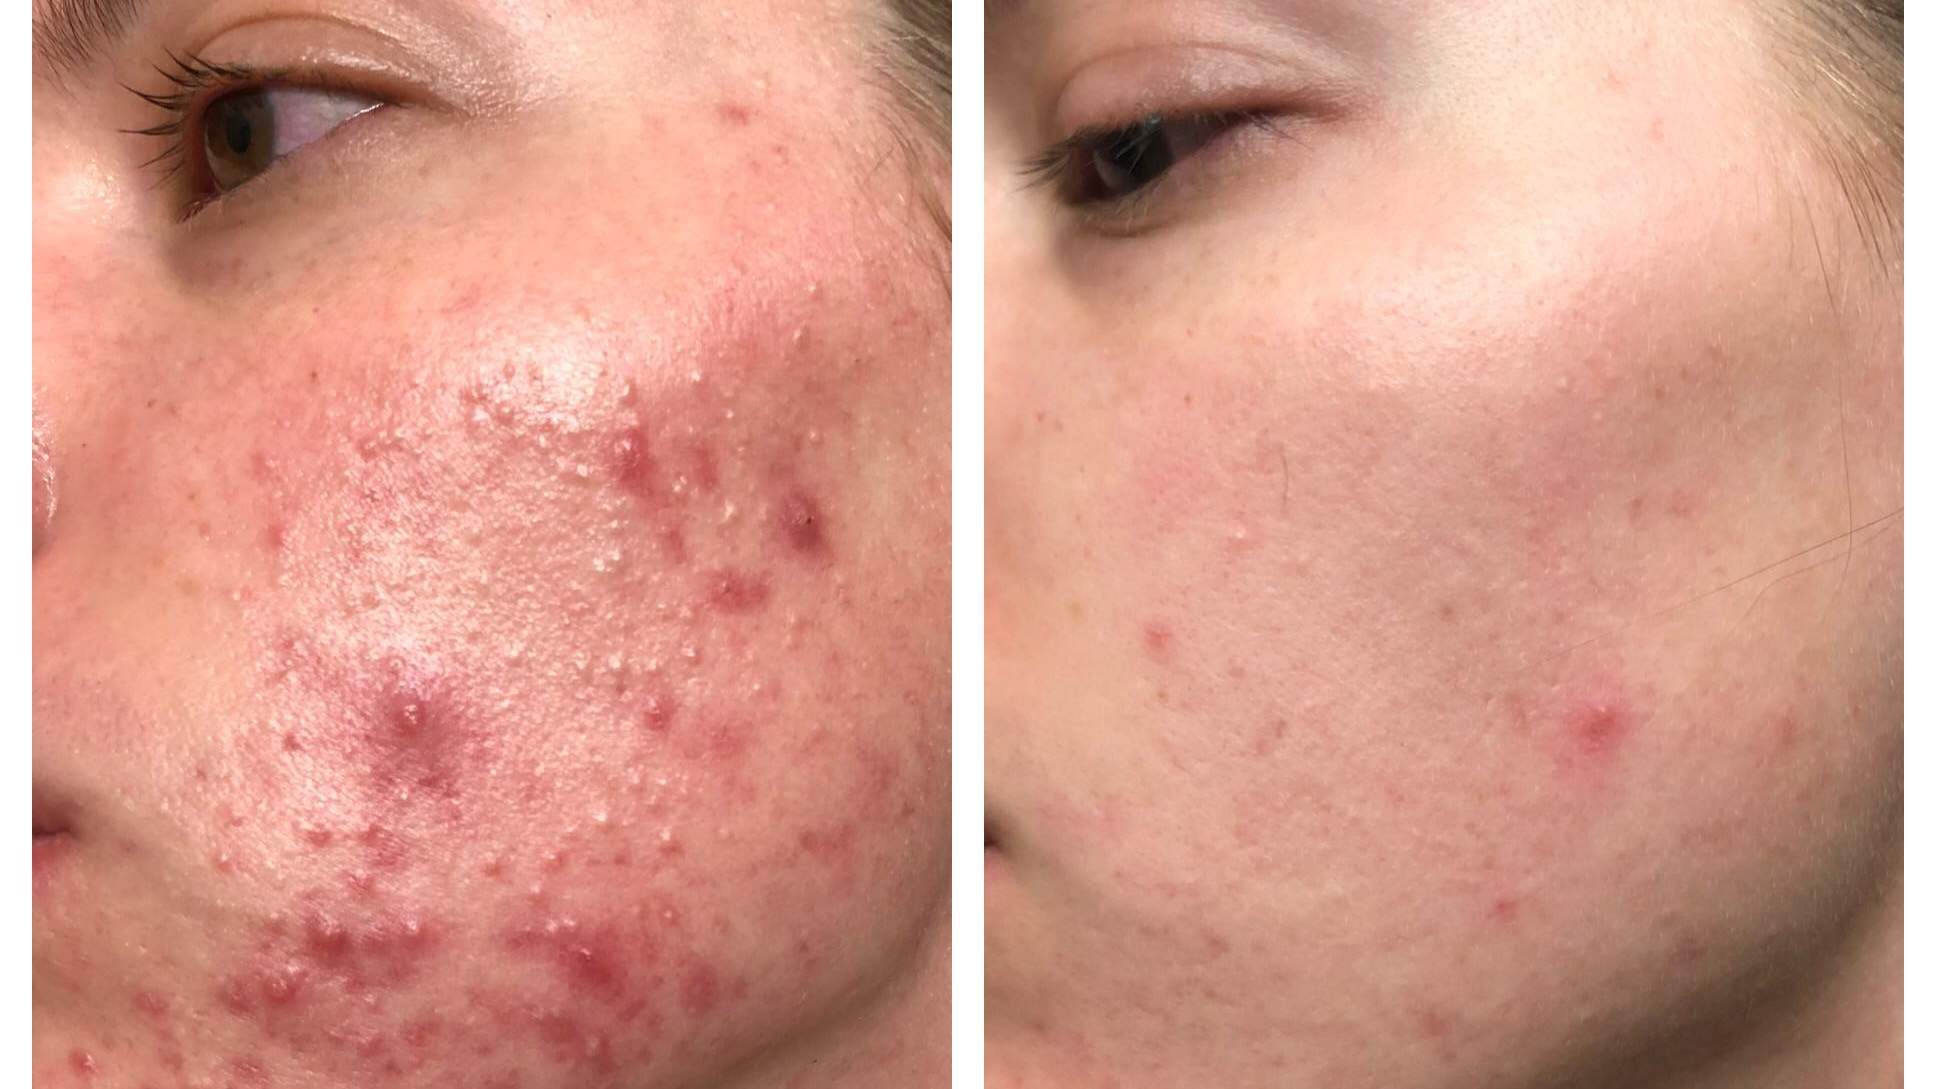 acne hemp hemp-oil face beauty skin cyst cystic beauty product routine